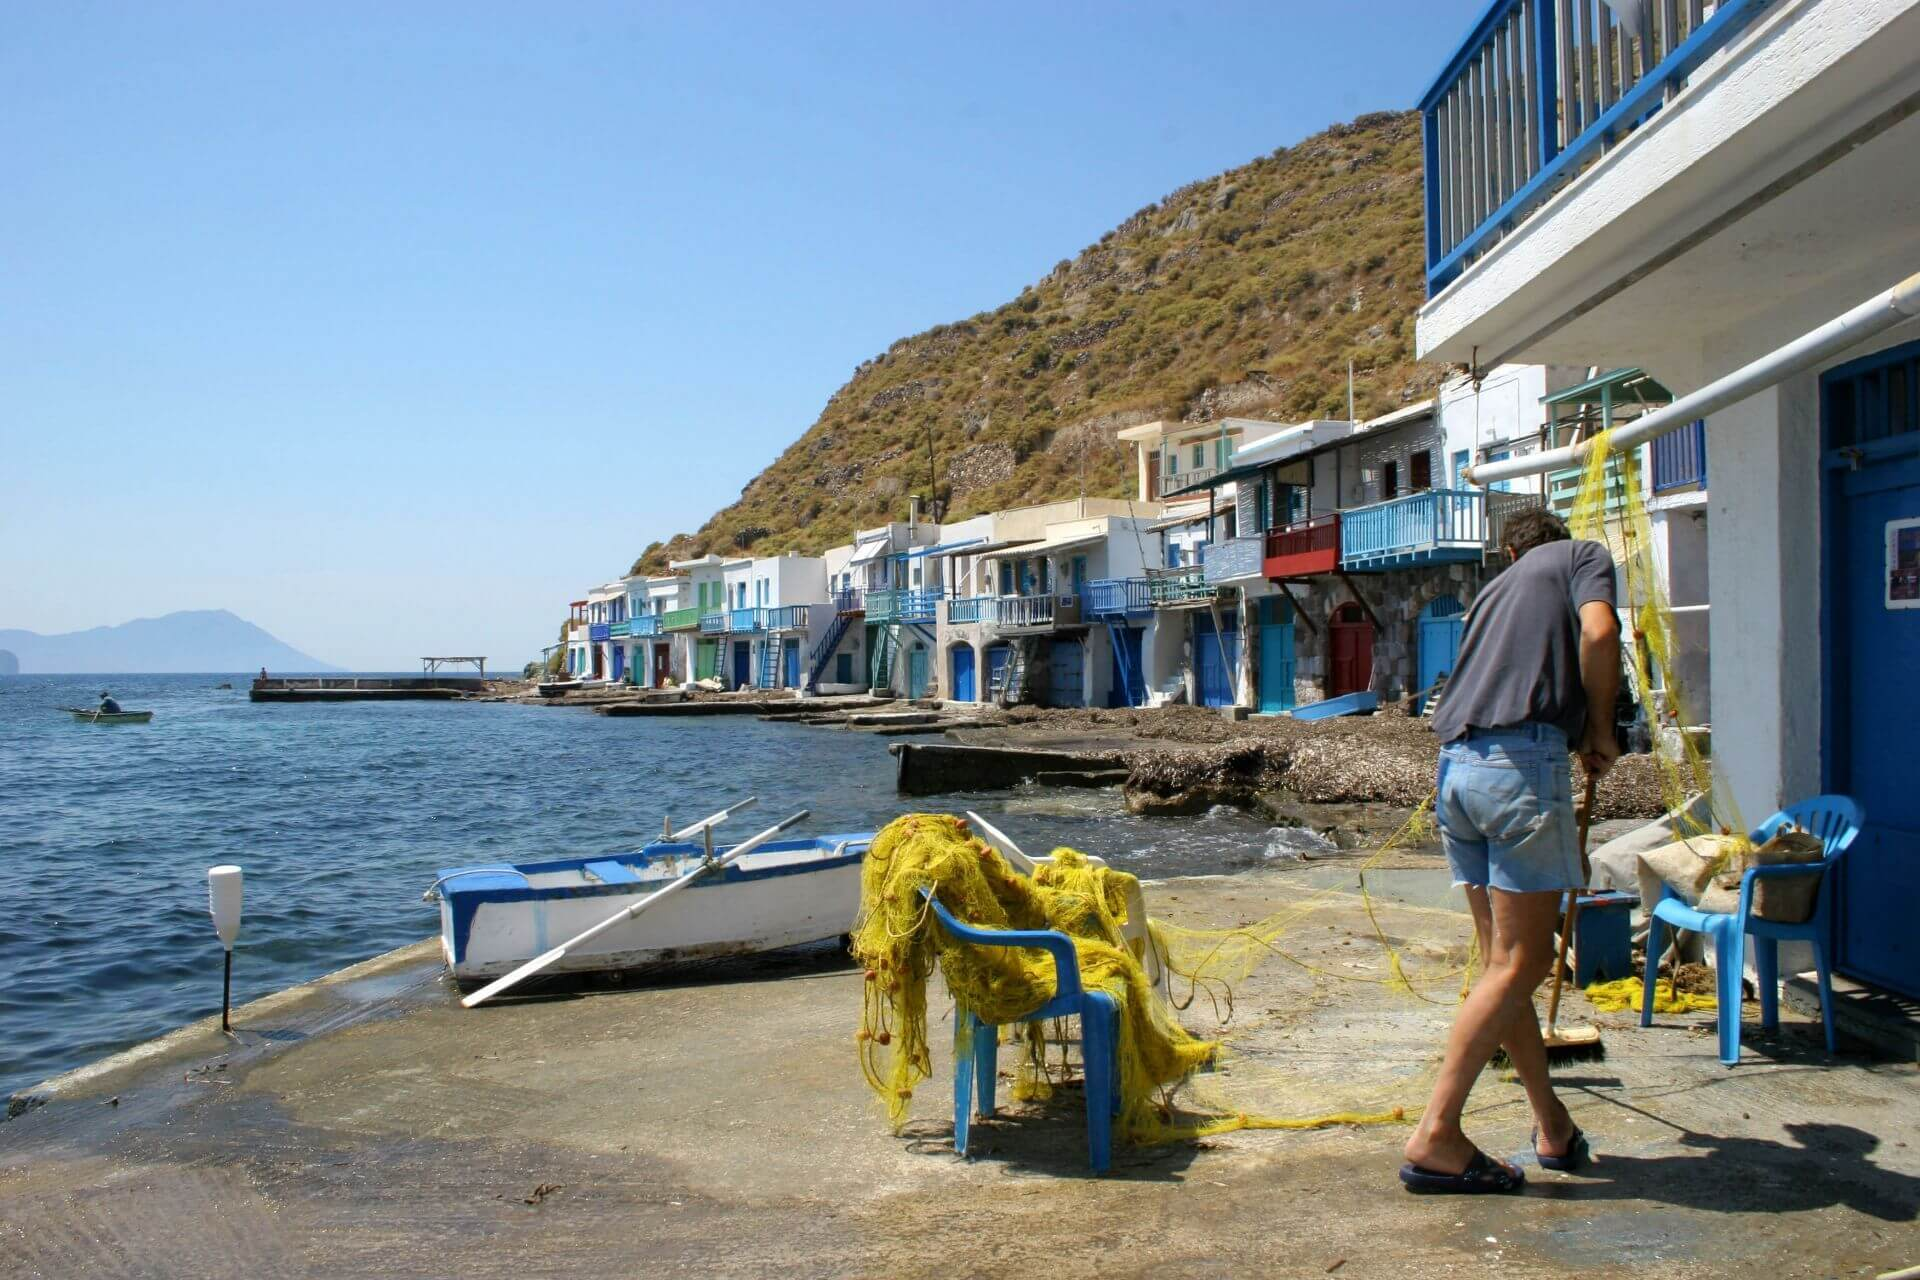 Cyclades islands: The fishing villages of Milos island